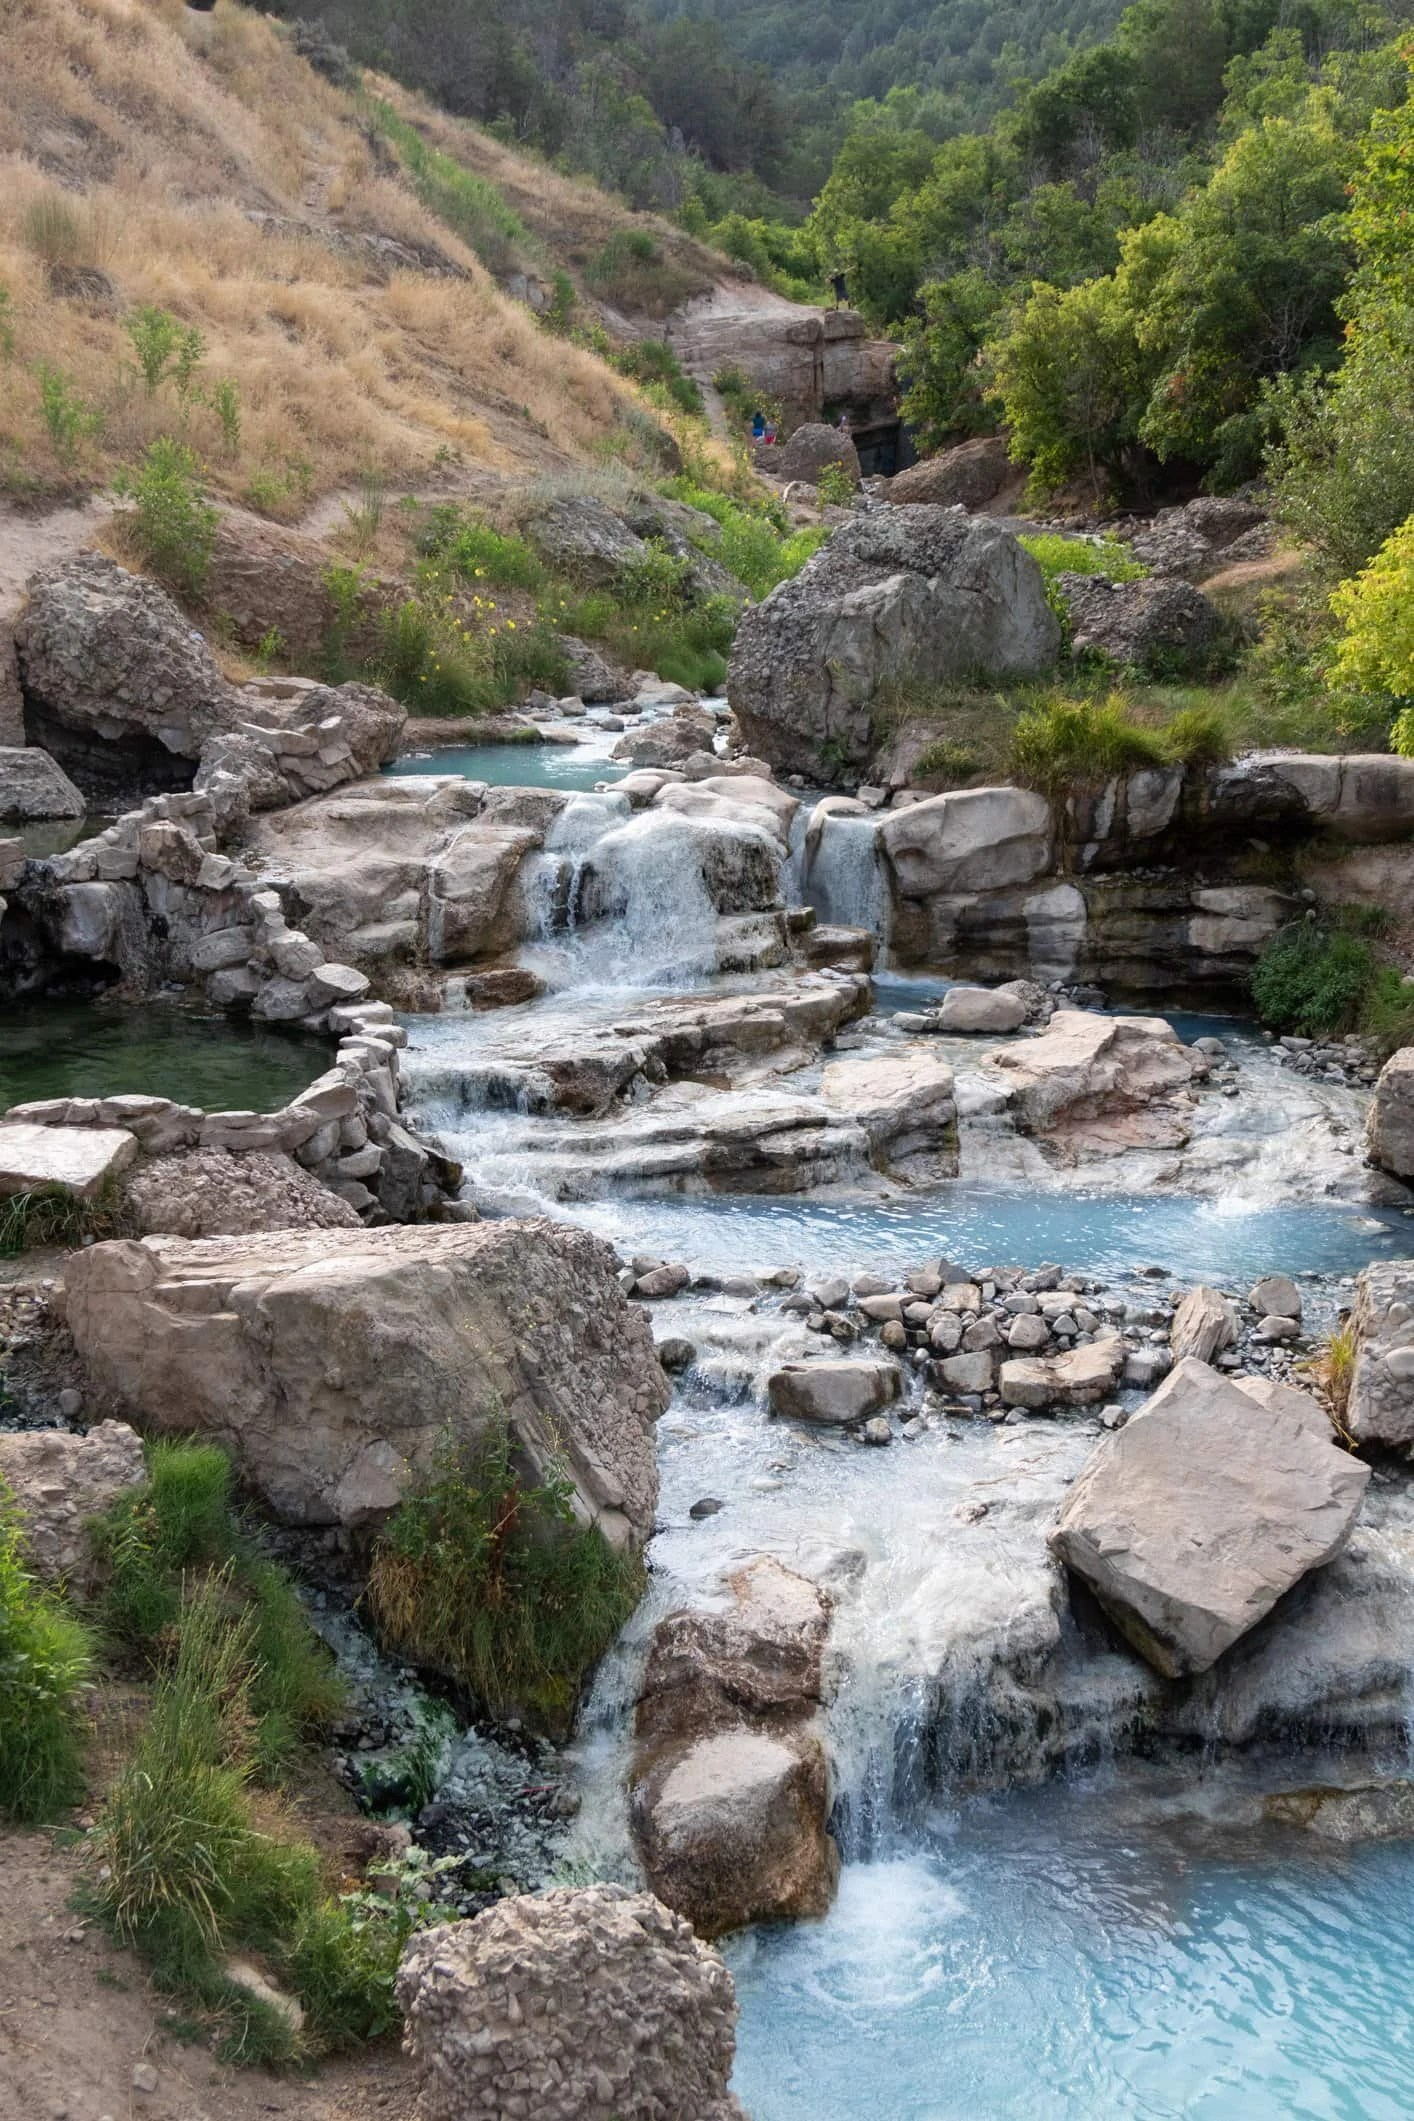 fifth water hot springs in spanish fork utah is absolutely incredible. go on a rad adventure and soak in crystal blue pools